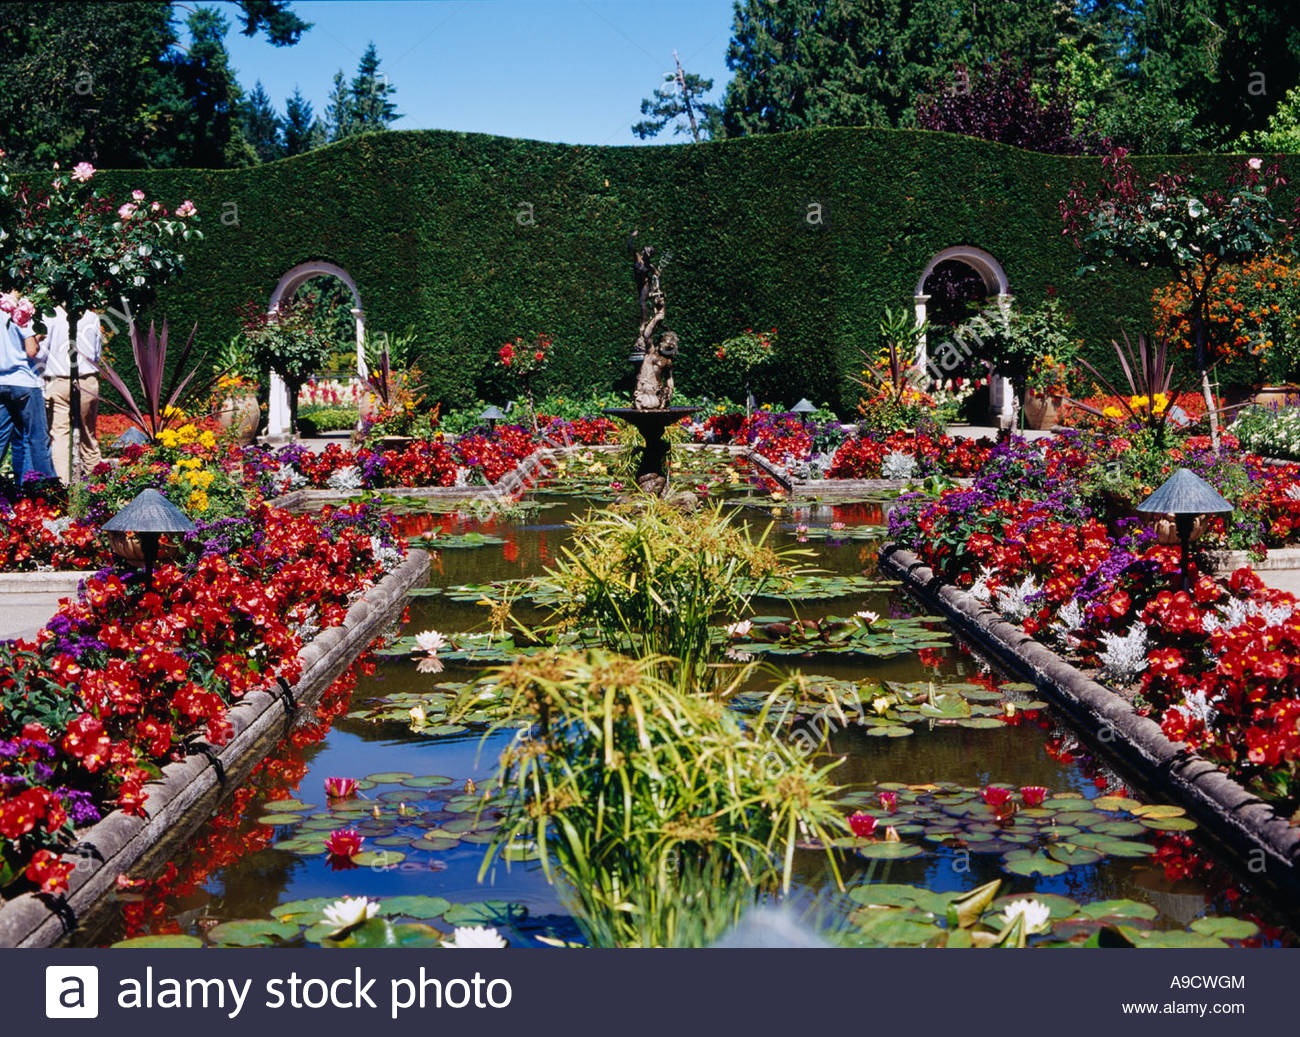 Images of butchart gardens with images of butchart gardens elegant stock photo the butchart gardens italian garden flower victoria canada with images of butchart gardens altavistaventures Choice Image